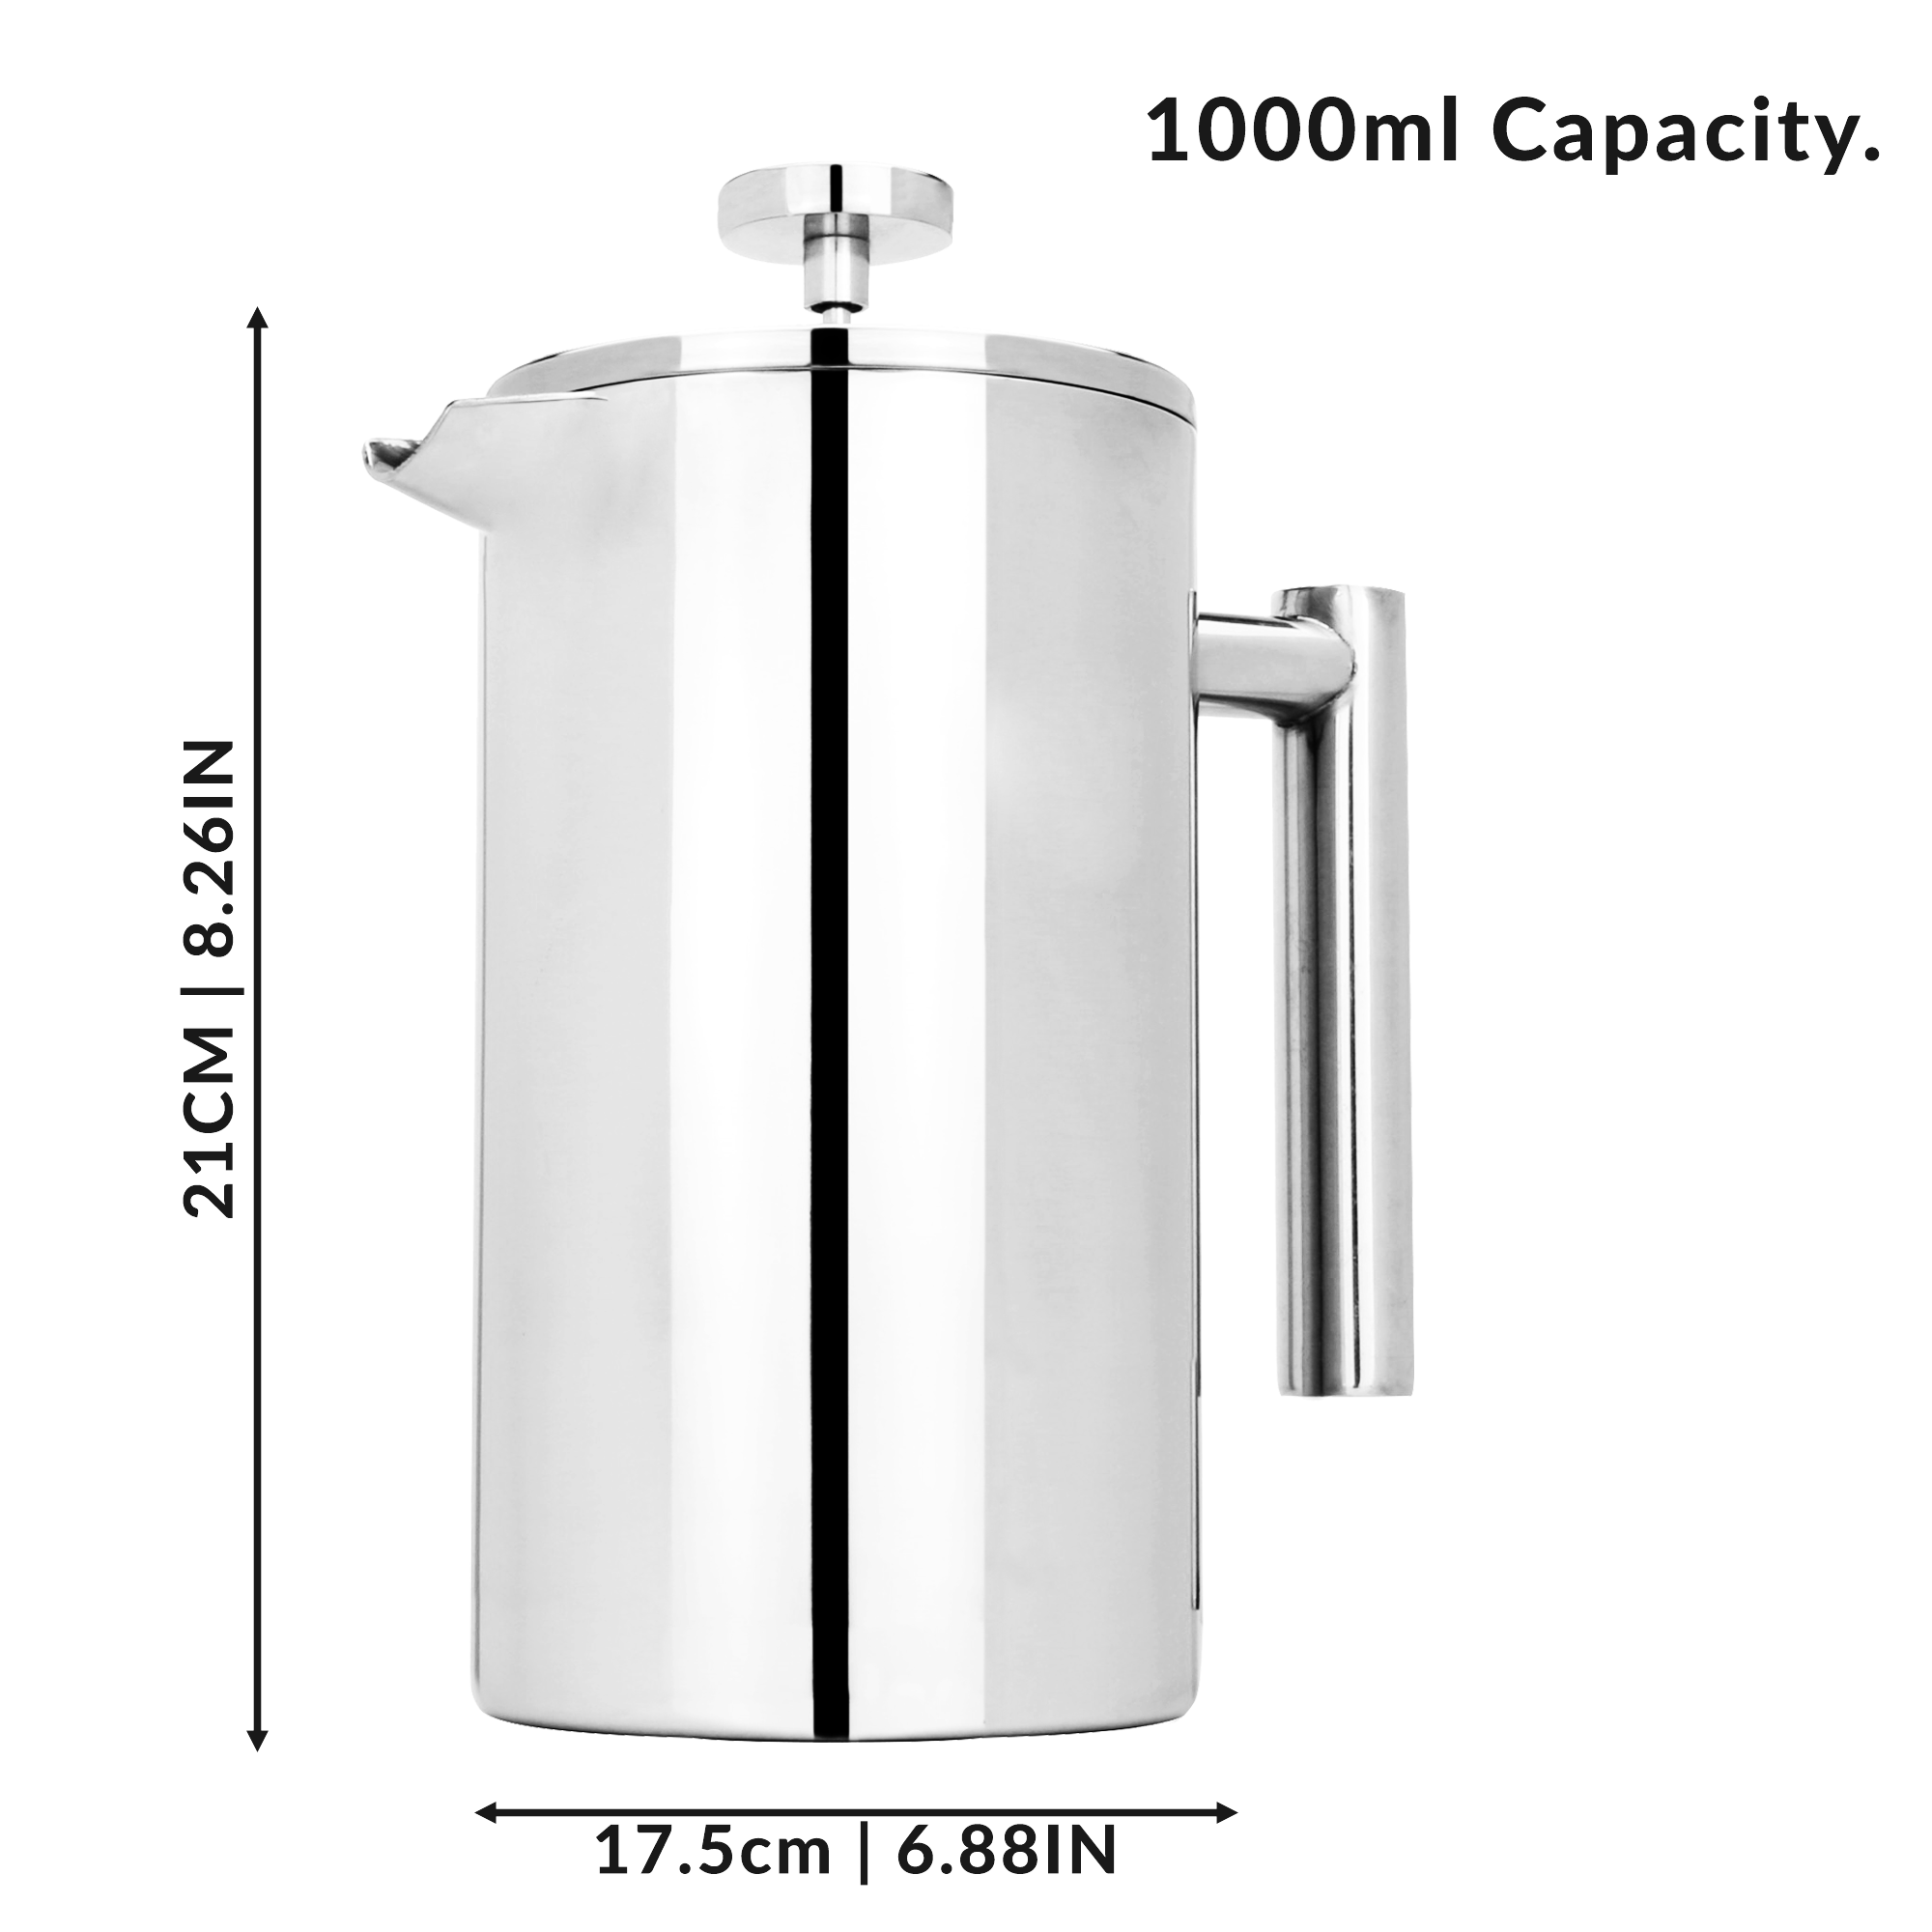 French-Press-Cafetiere-Steel-Coffee-Maker-FREE-Filters-amp-Spoons-M-amp-W miniatuur 17